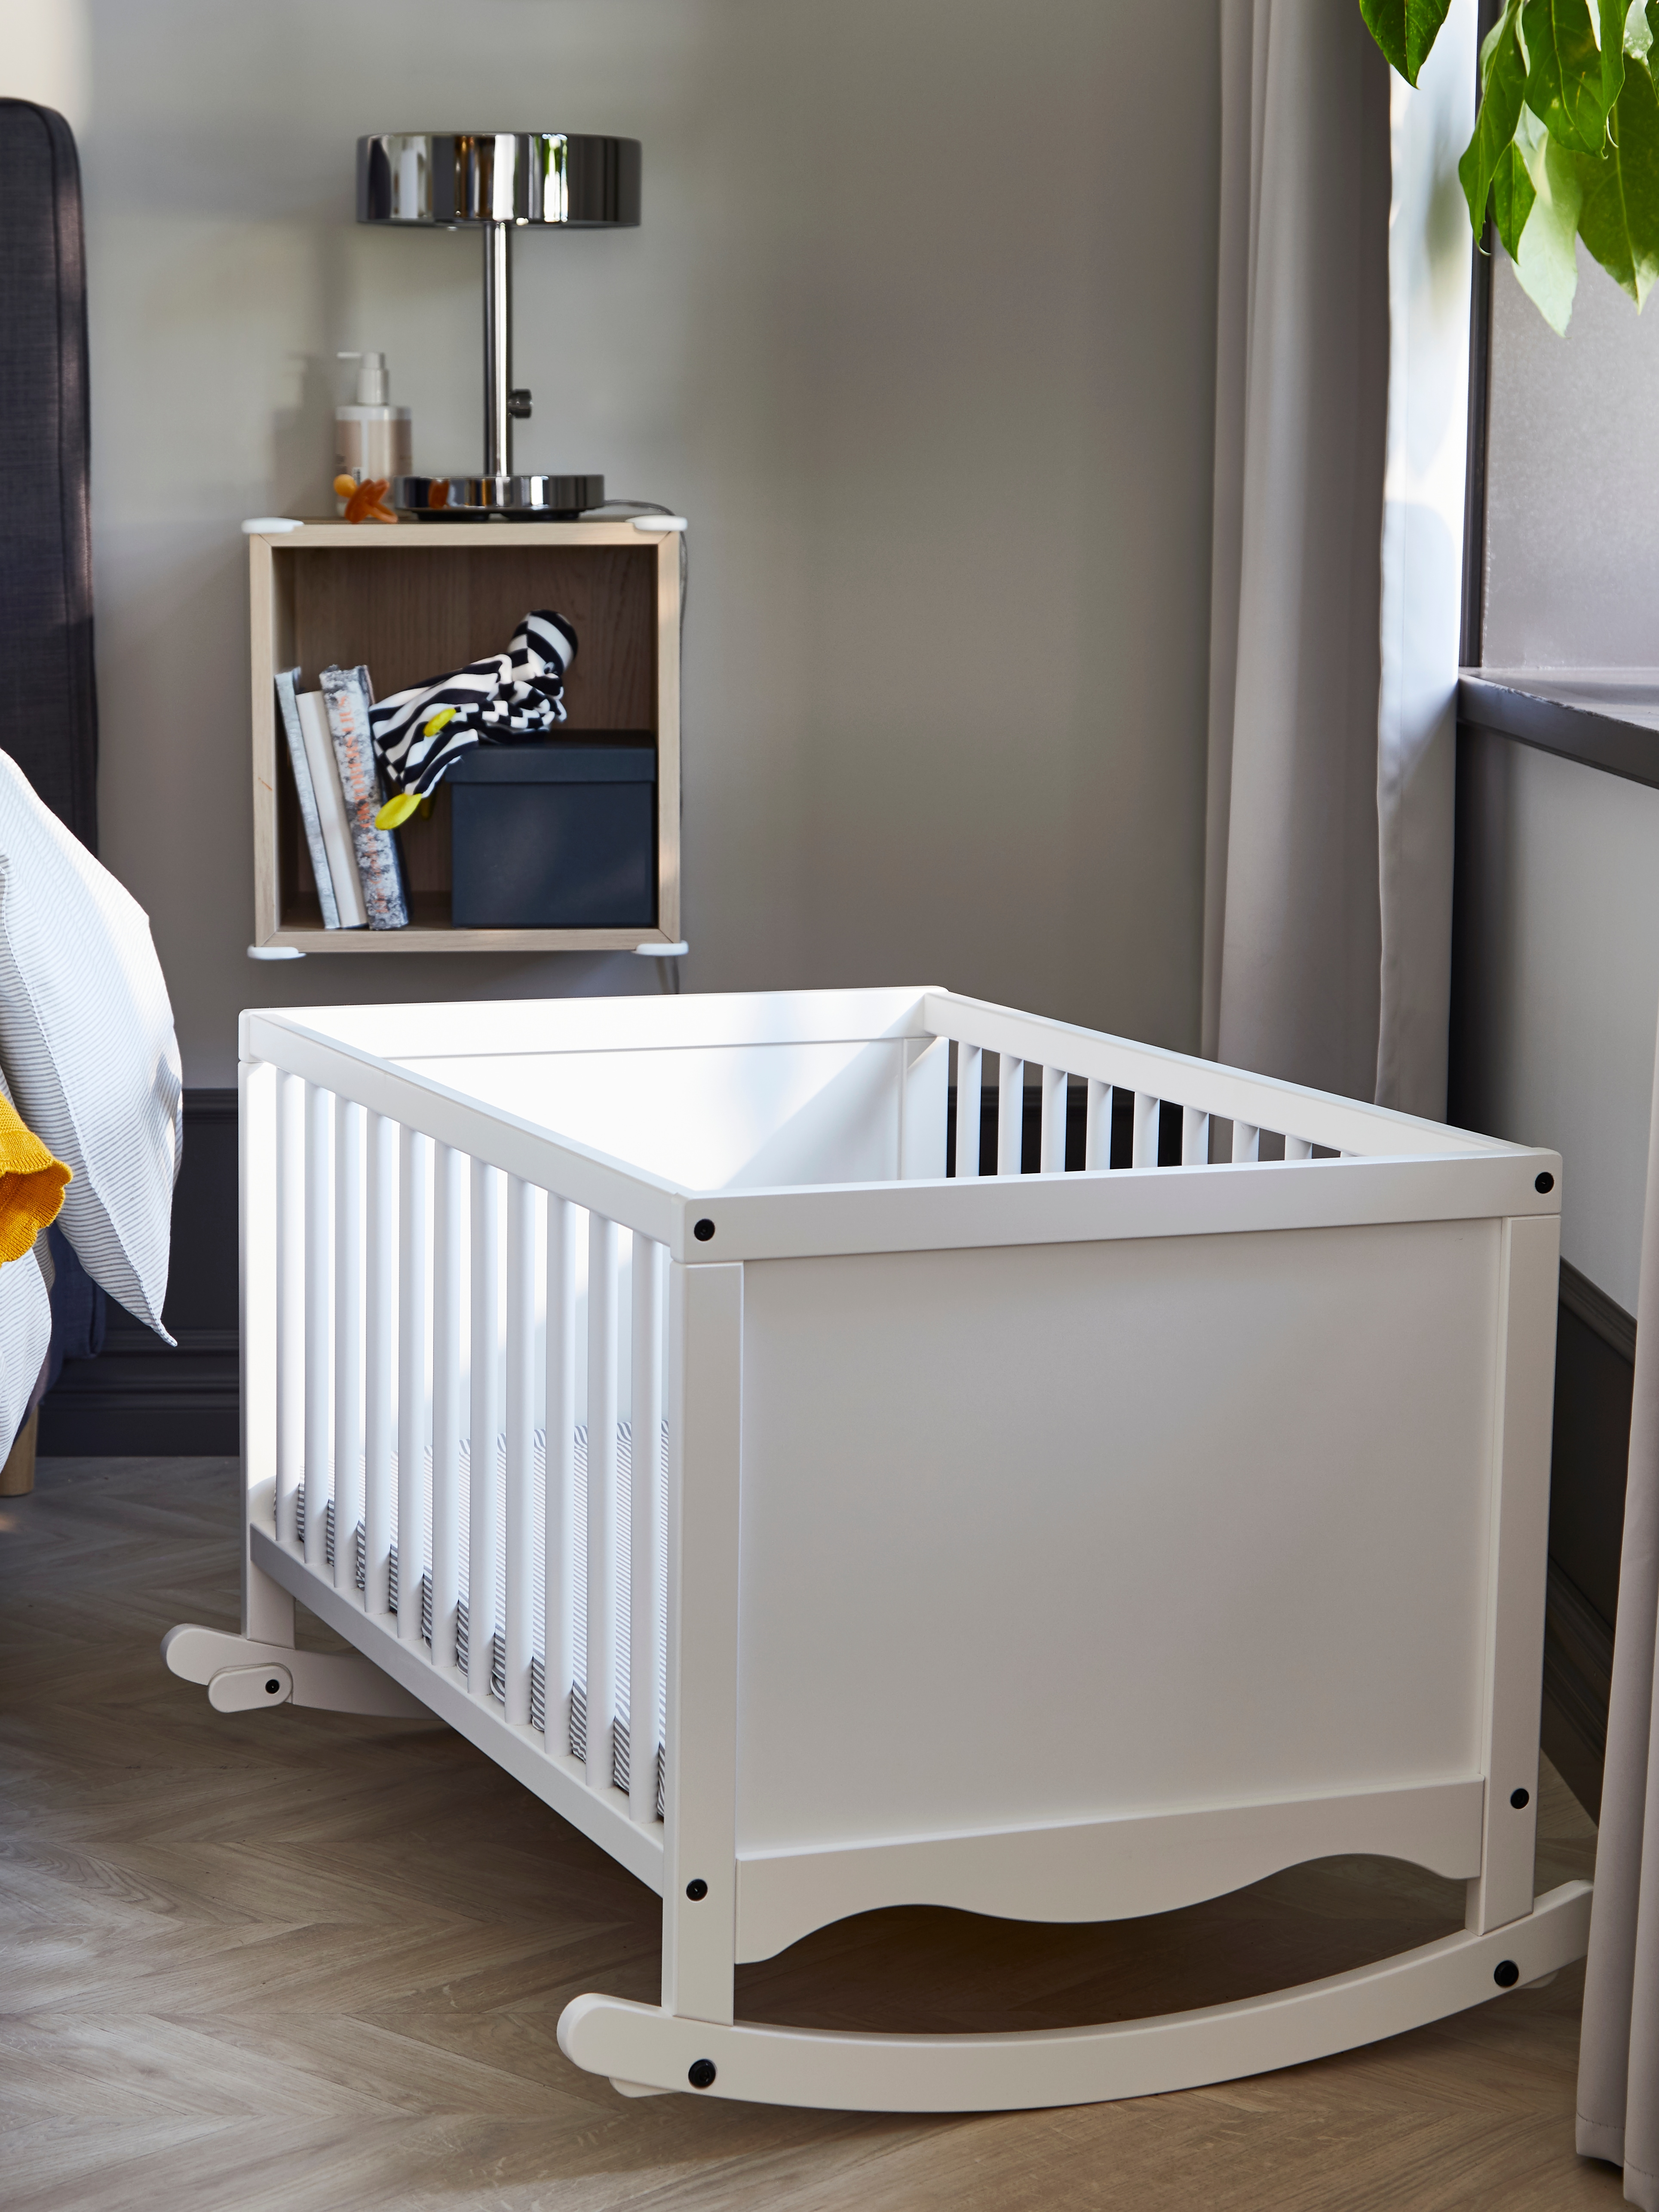 A white SOLGUL cradle with round spindled bars on two sides and curved rockers underneath sits between a bed and a window.